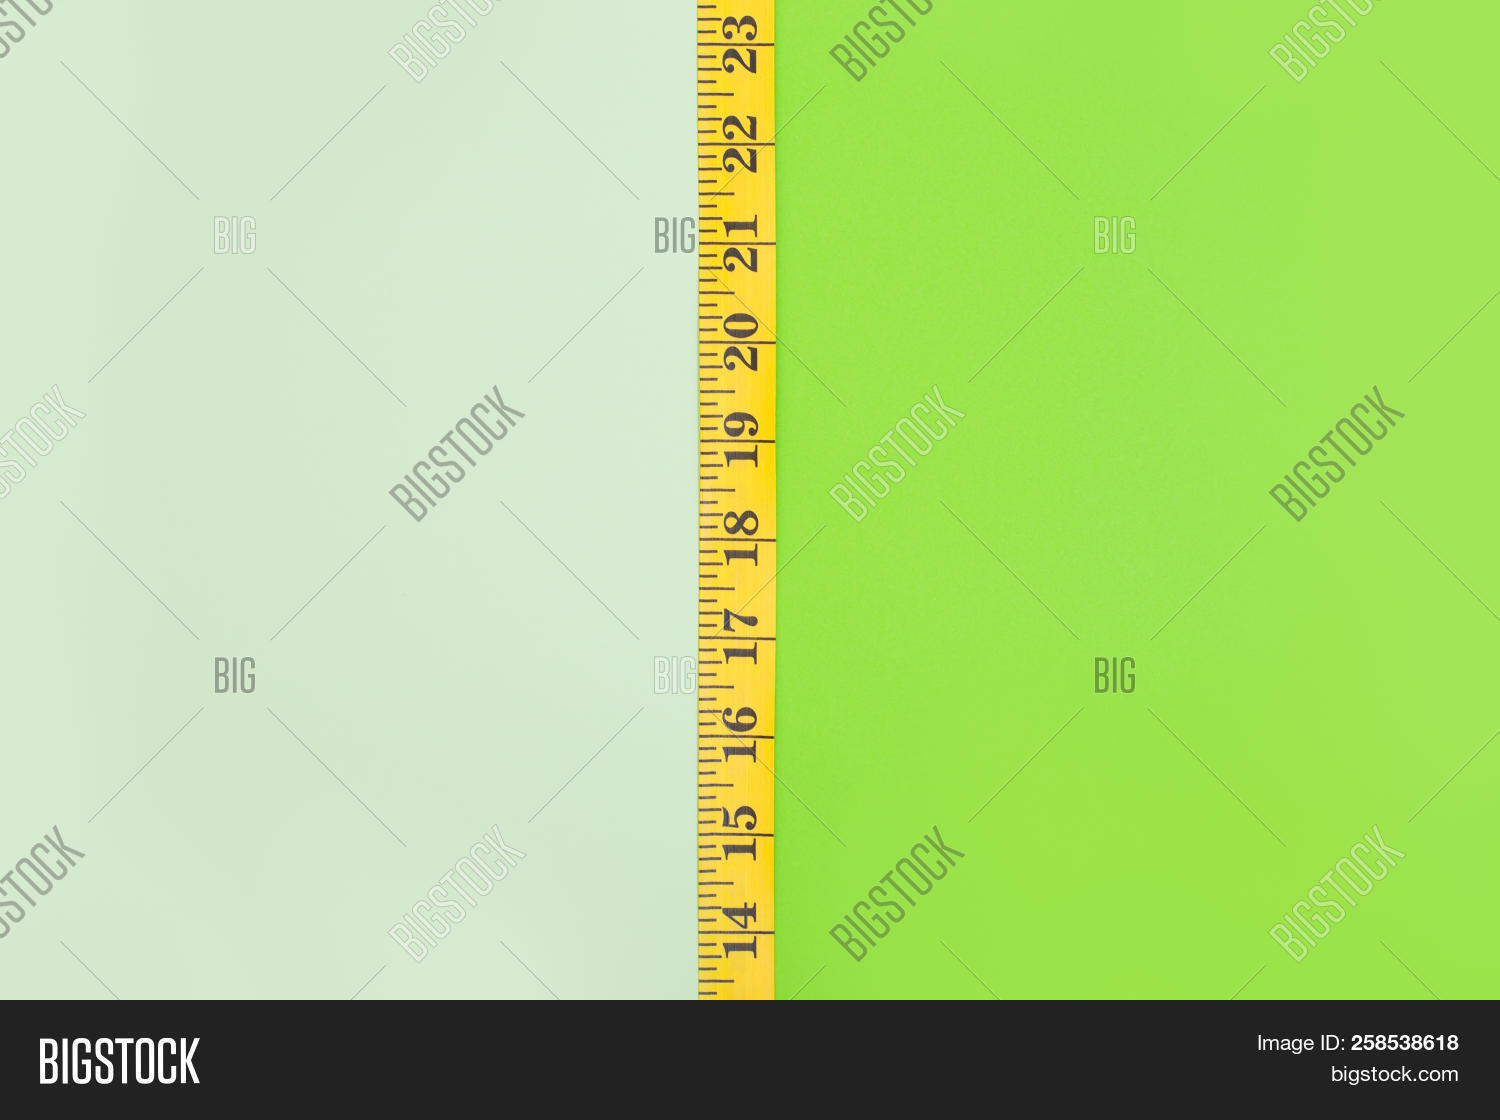 above,background,balance,blank,centimetr,choice,choose,clean,color,compare,concept,copyspace,devide,diet,eating,empty,fast,food,fruit,green,habbits,half,health,healthcare,healthy,hue,layout,lifestyle,loss,match,mearuse,meter,middle,nobody,nutrition,object,overhead,pace,paper,part,separate,slim,tape,tape-line,text,texture,top,vegetables,view,weight